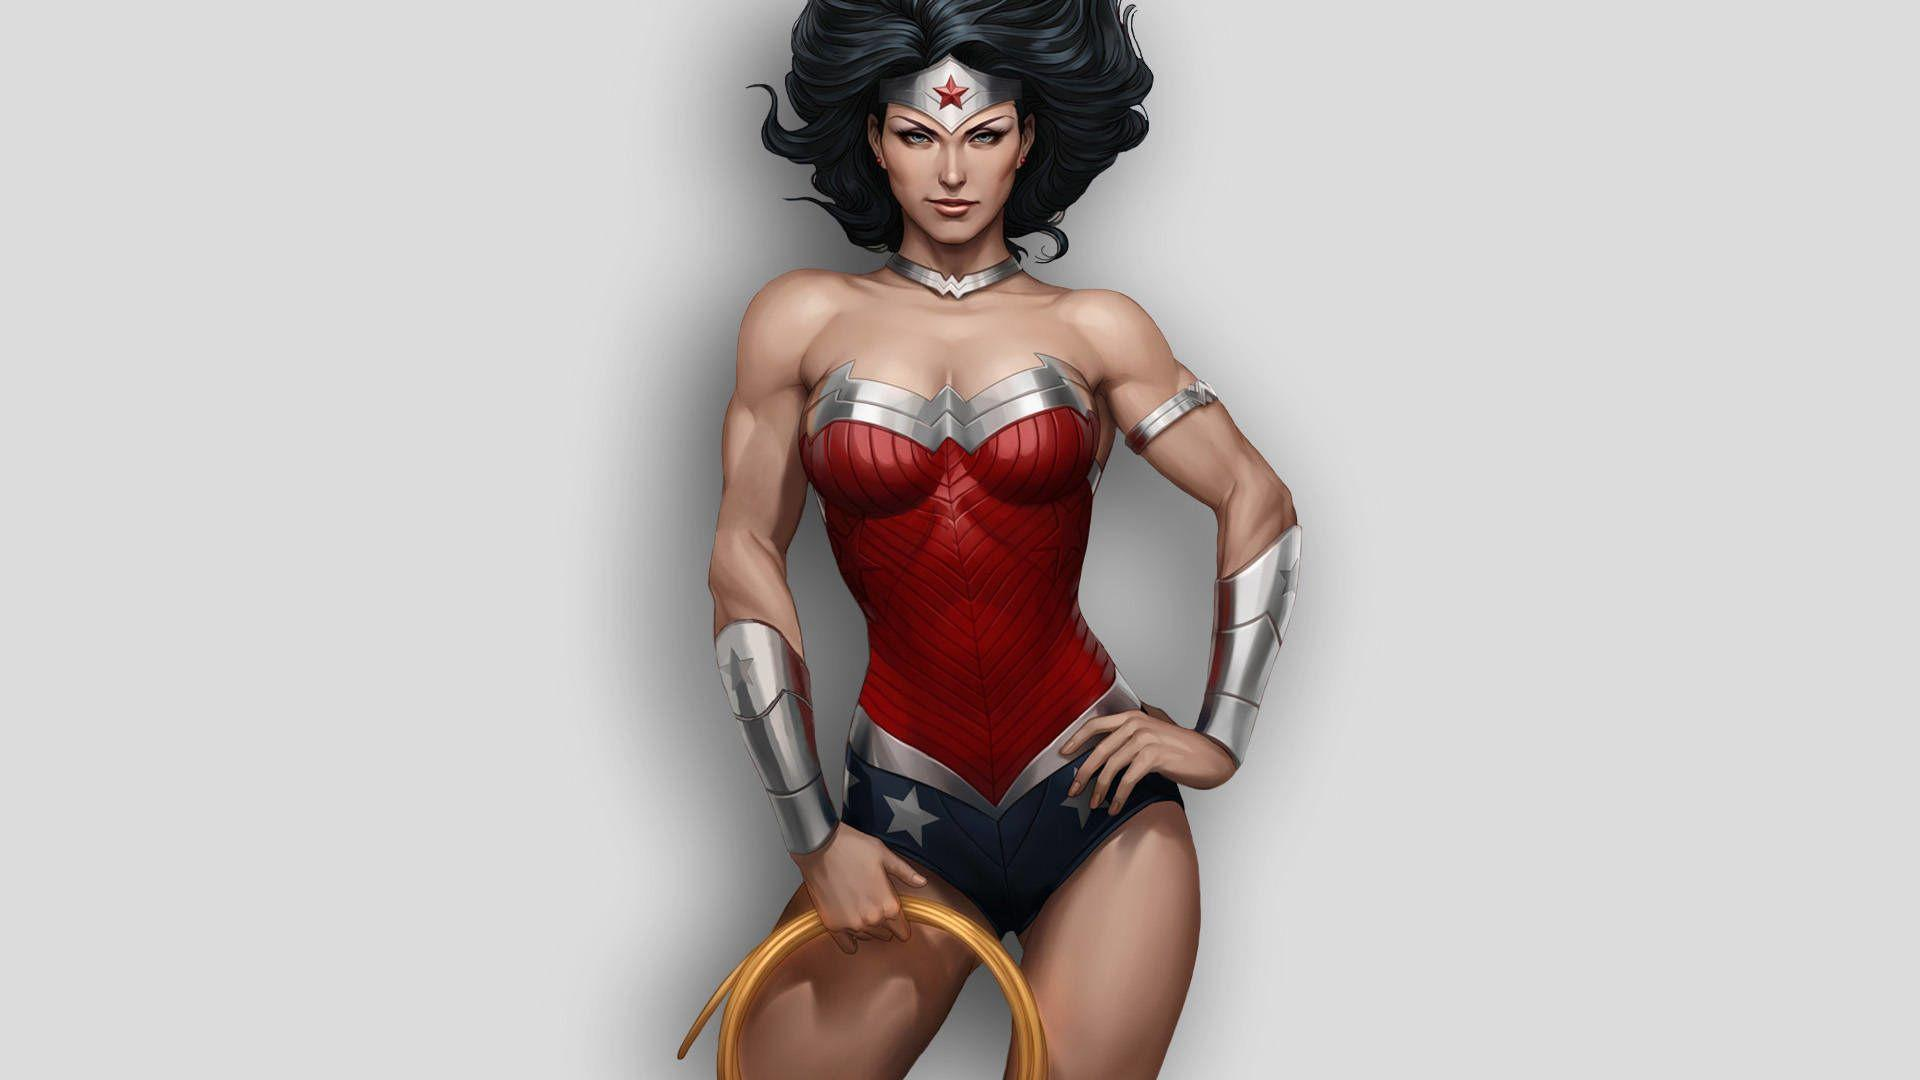 339 Wonder Woman HD Wallpapers | Backgrounds - Wallpaper Abyss